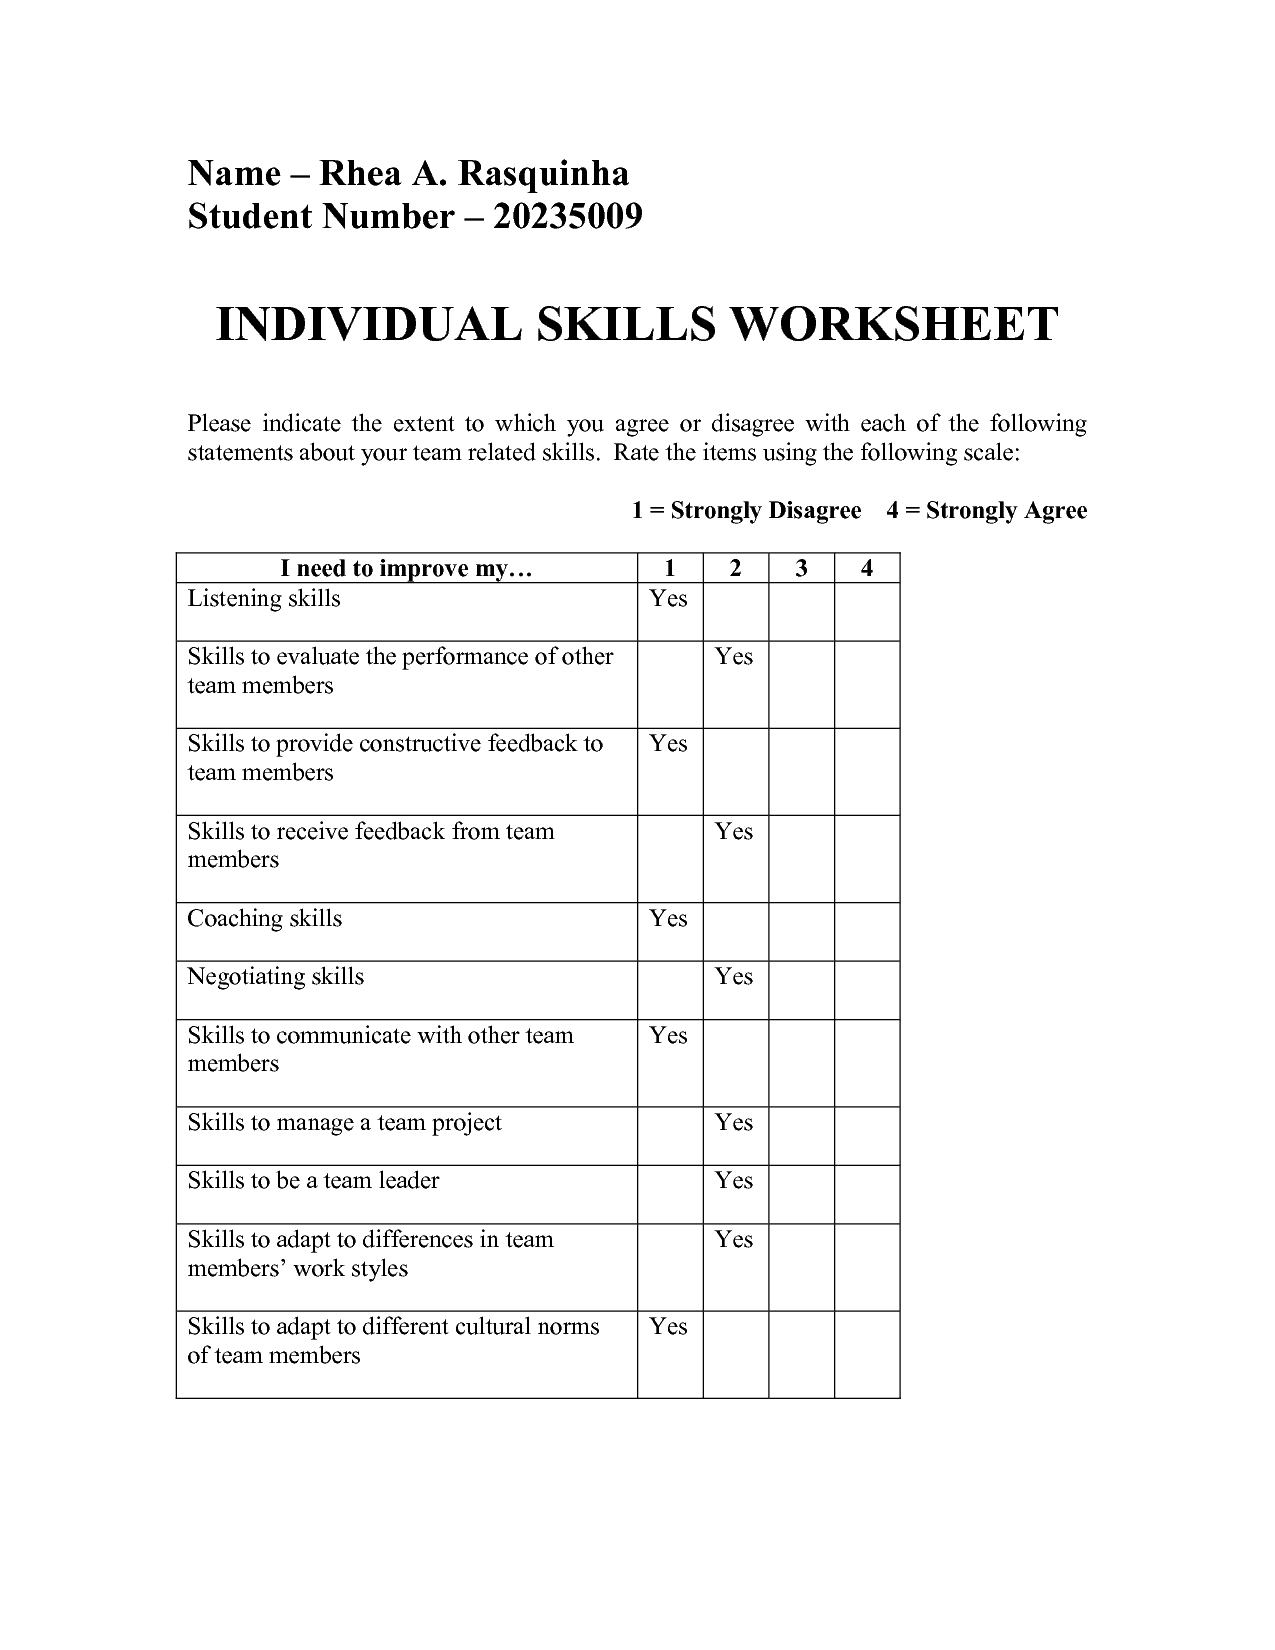 Child Support Worksheet Ny